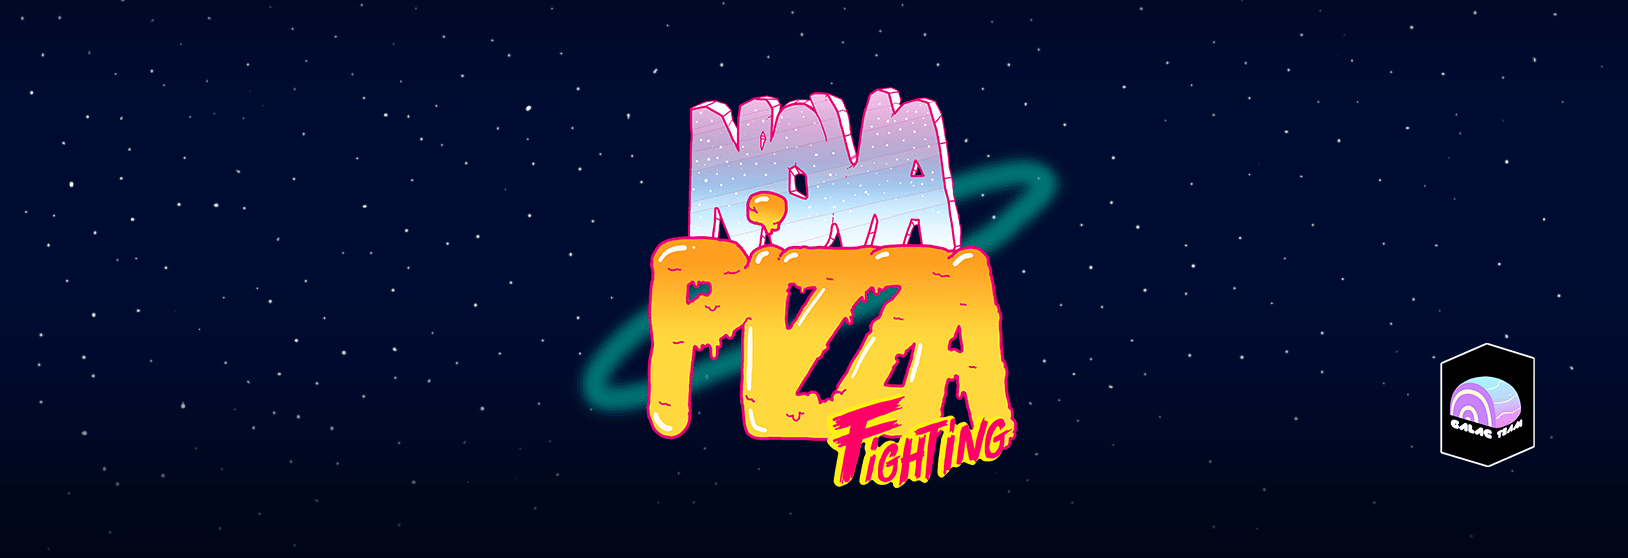 Nova Pizza Fighting